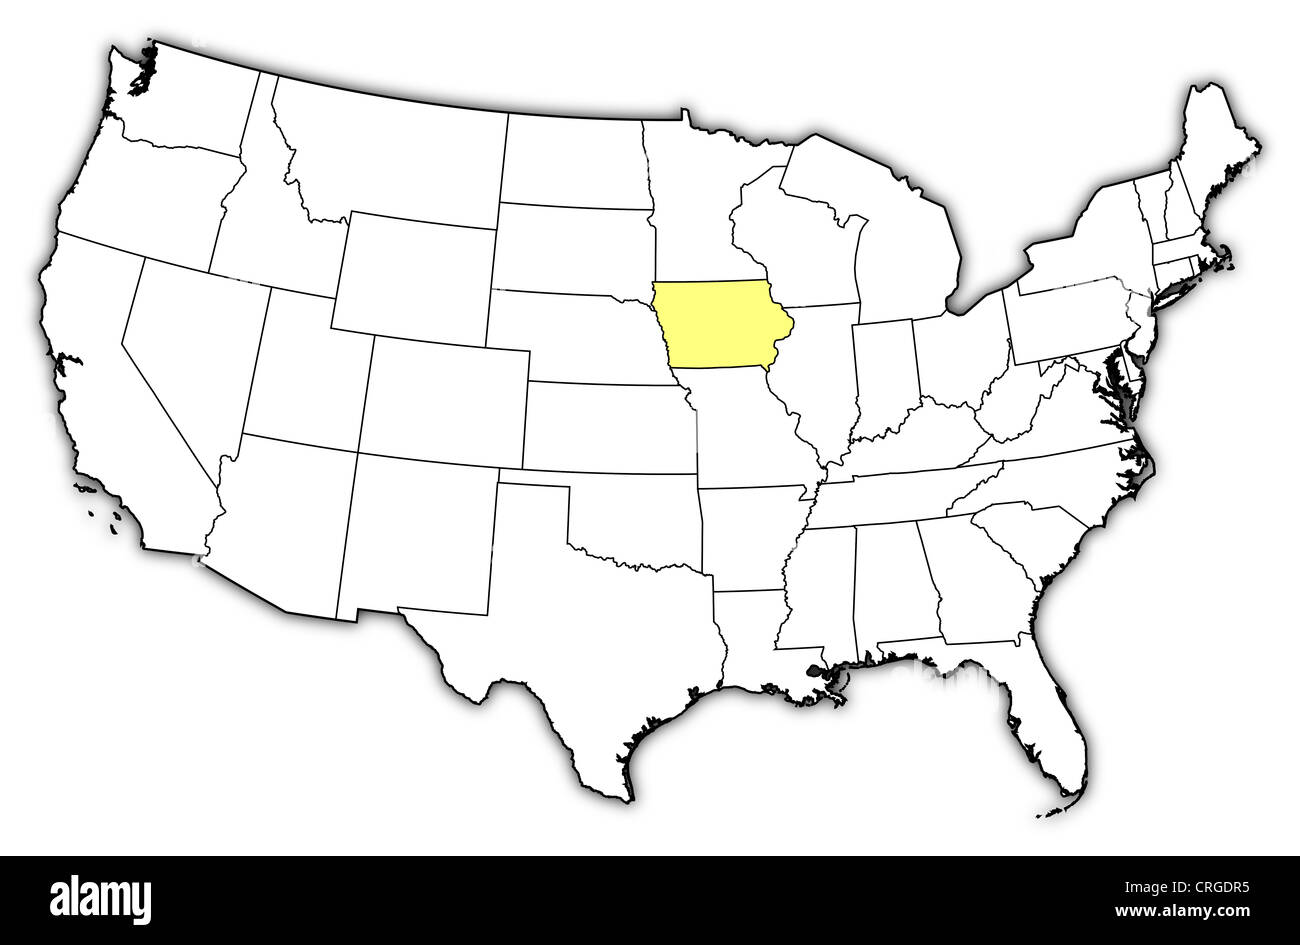 Where Is Iowa On The United States Map.Political Map Of United States With The Several States Where Iowa Is